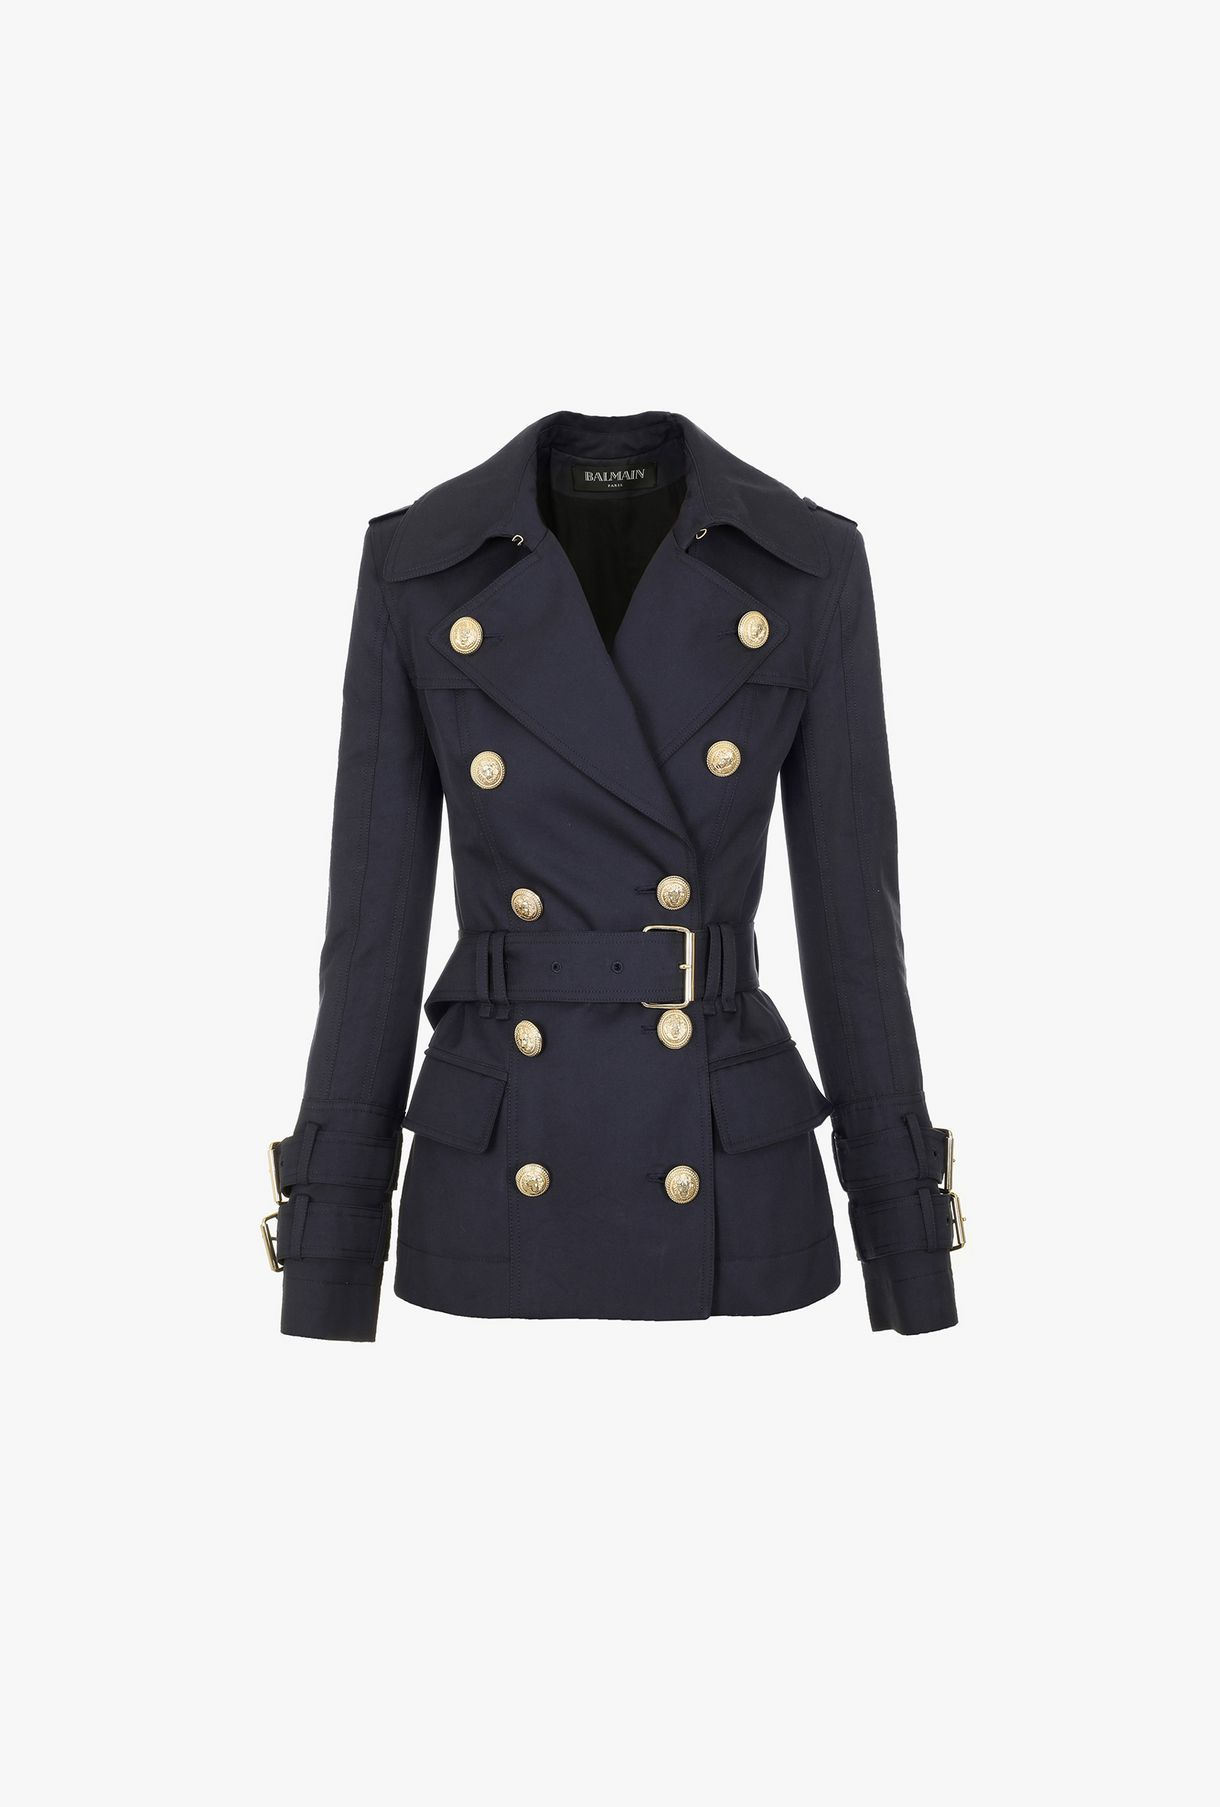 Looks - How to short wear sleeve trench coat video